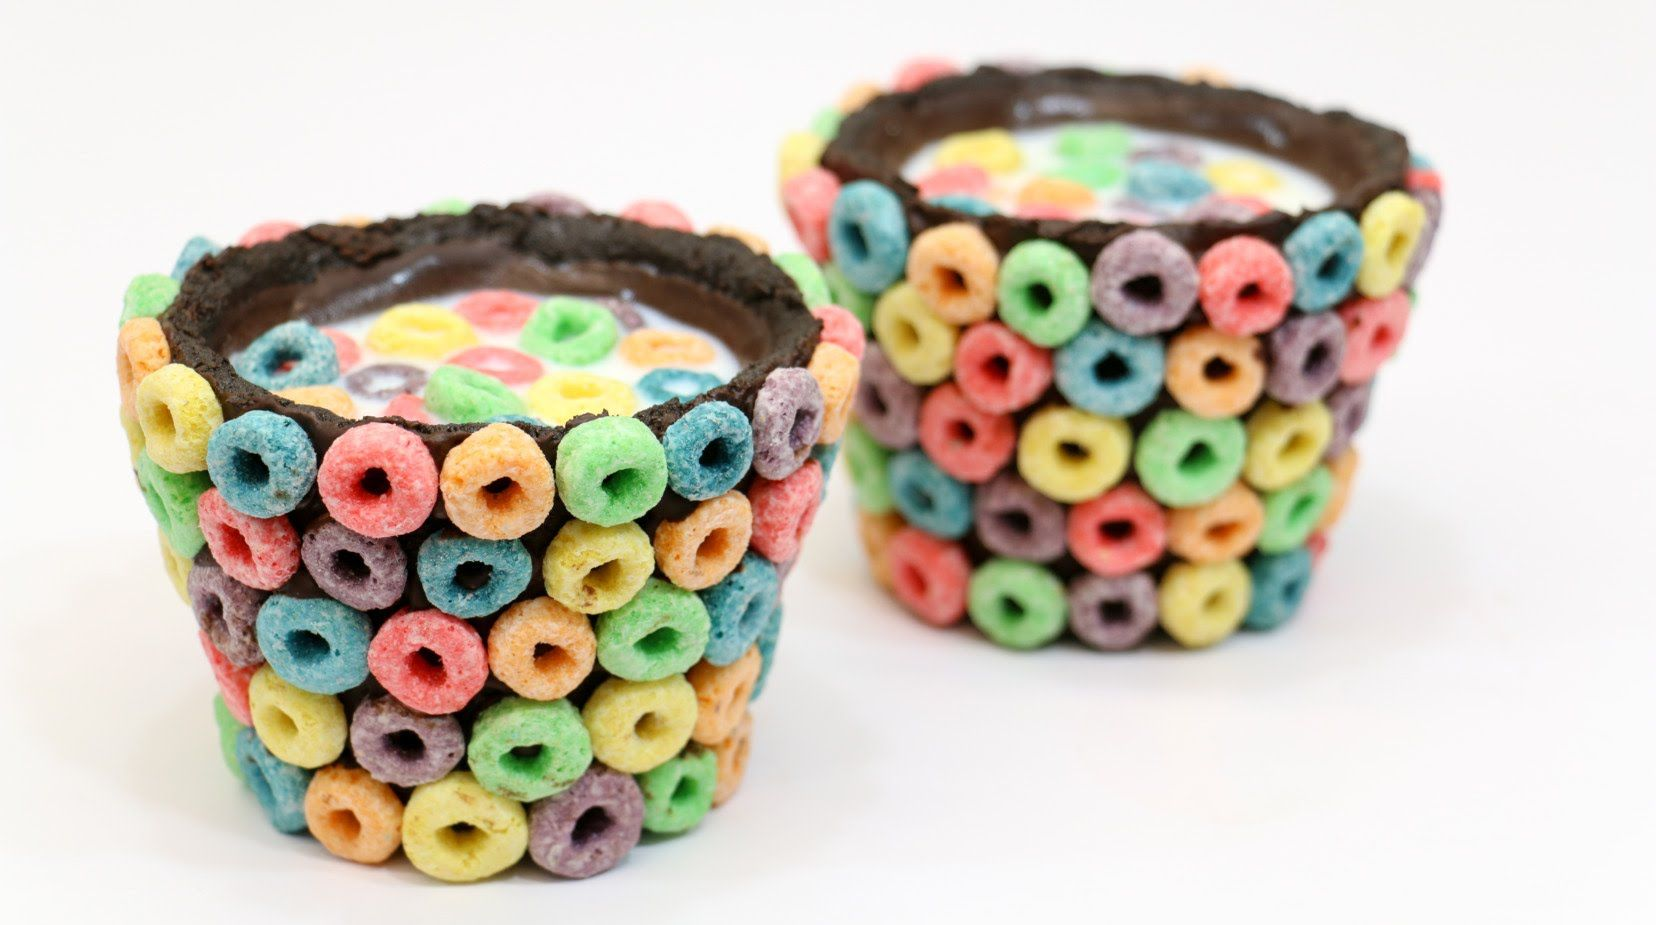 rainbow oreo chocolate cups filled with milk and cereals